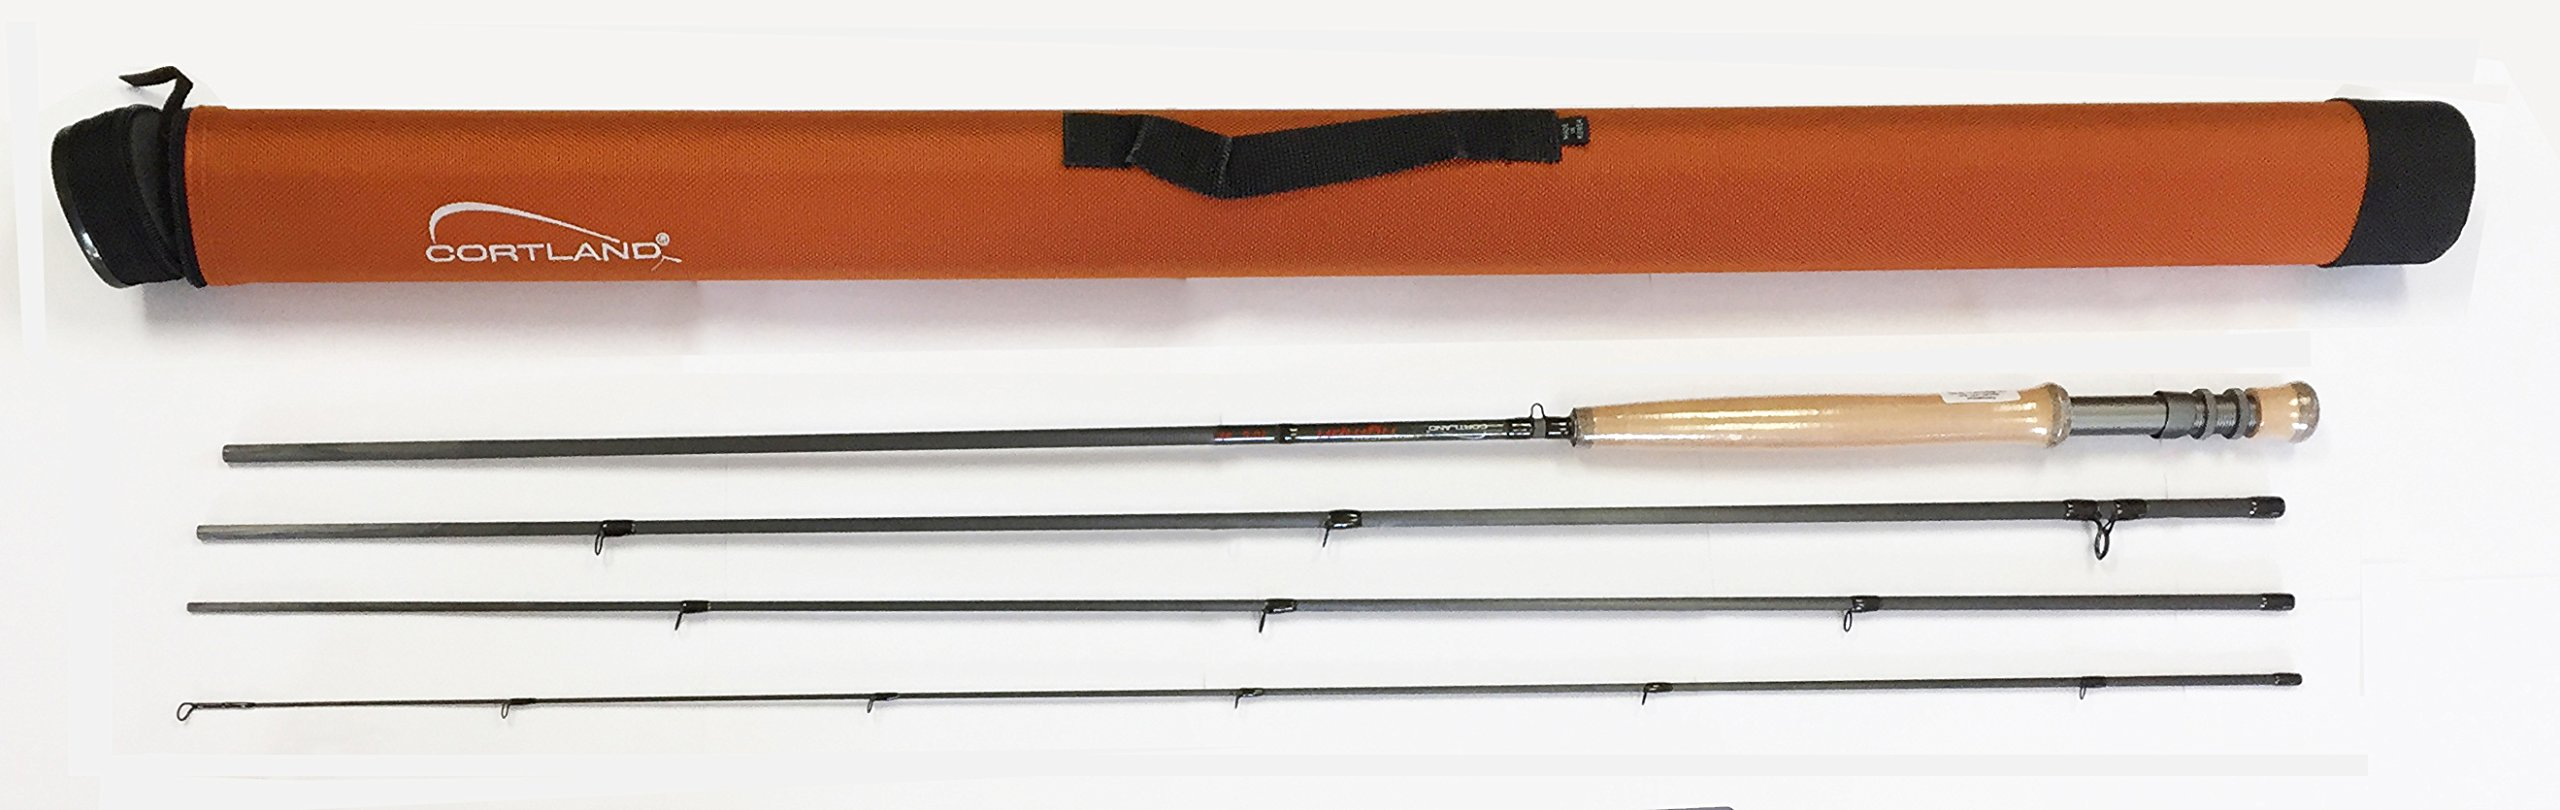 Cortland Competition Nymph Fly Rod 10.5 foot 3 weight 4 piece